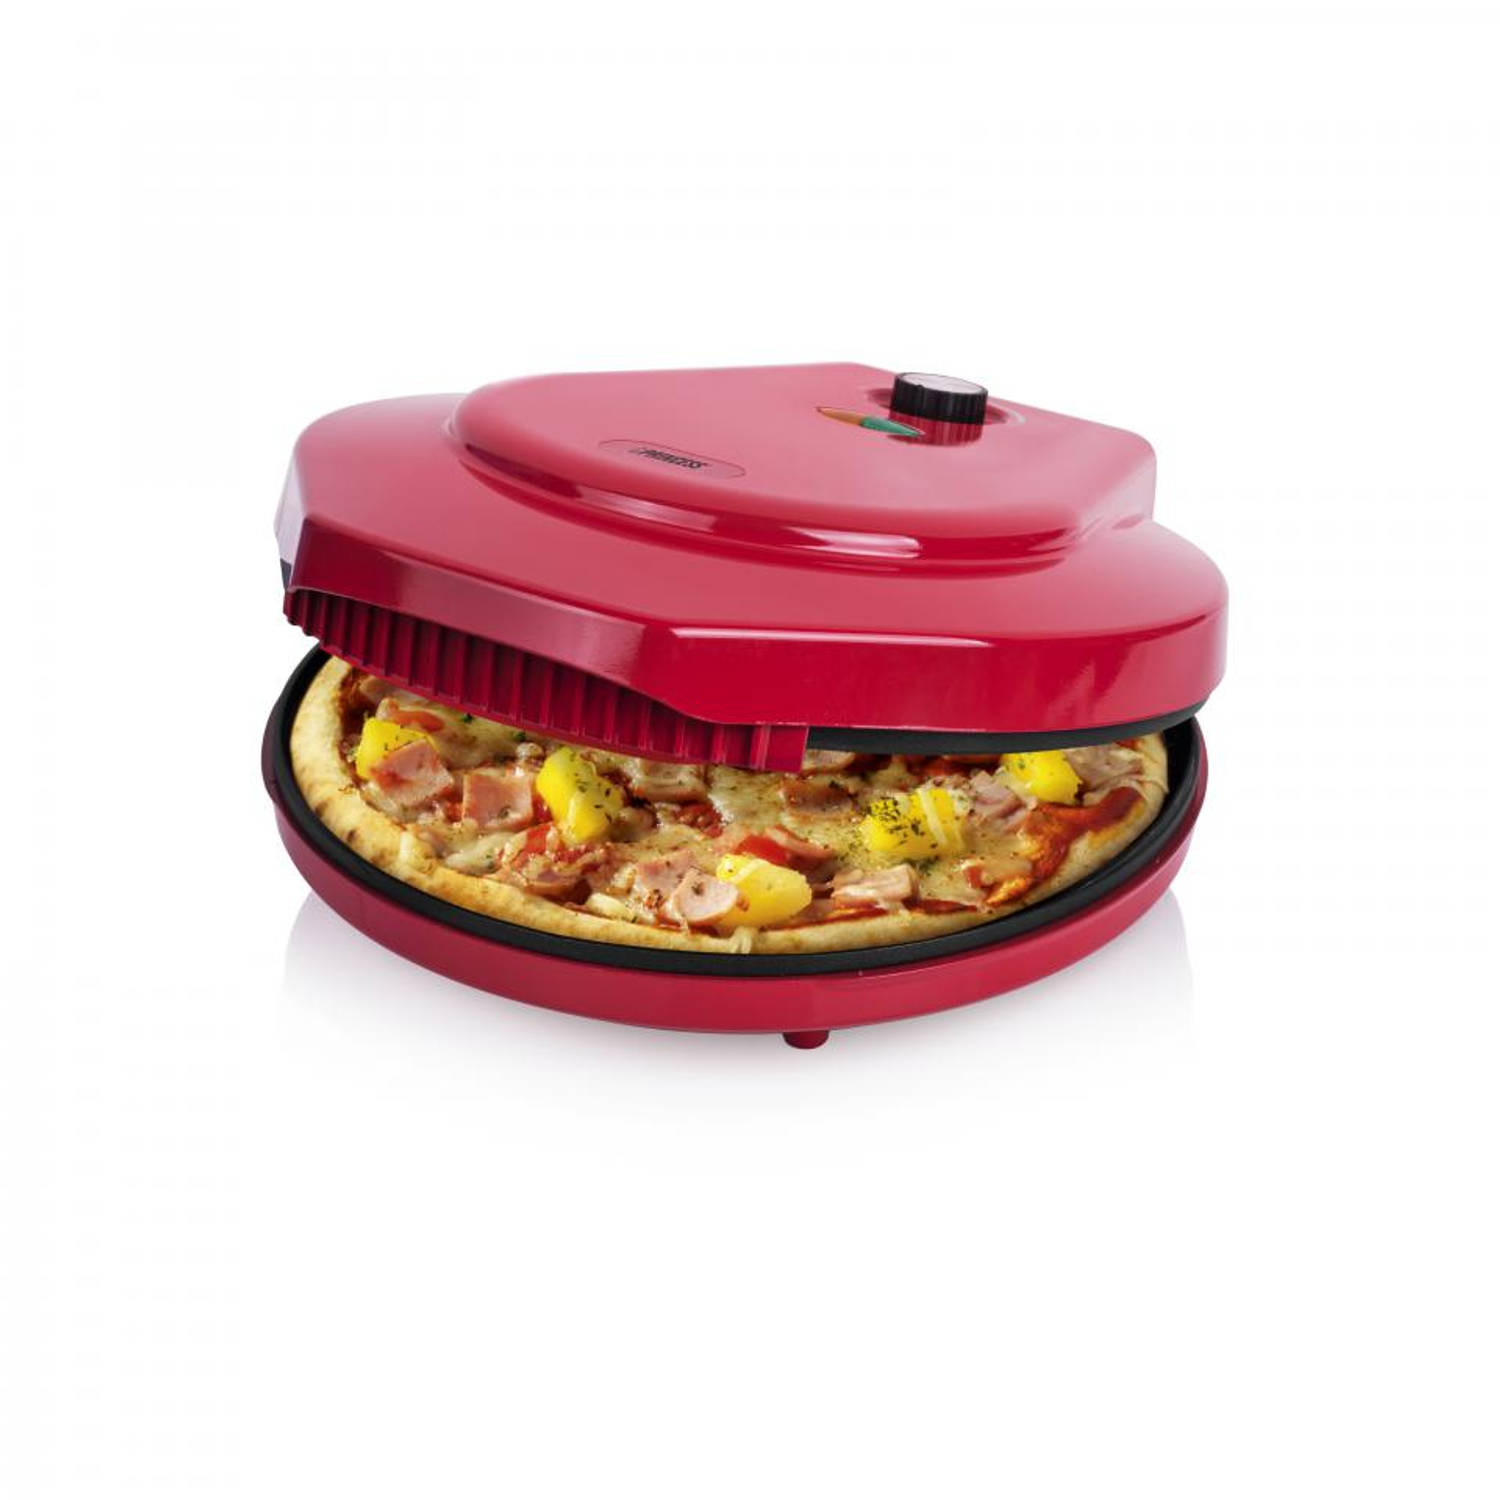 Princess Pizza Maker 01.115001.01.001